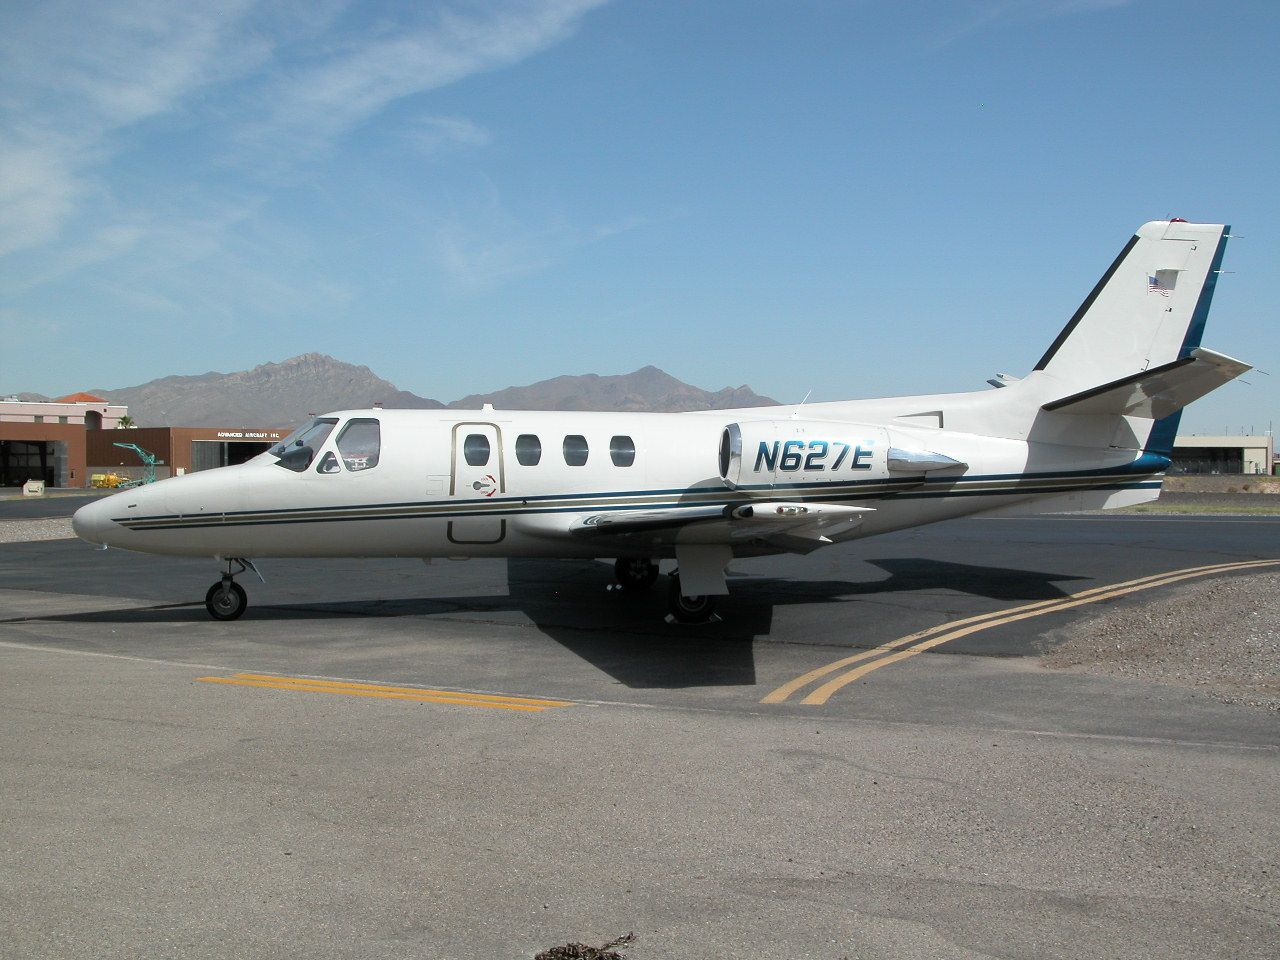 electric airplanes for sale with Cheap Private Jets For Sale on Attachment likewise Private Plane Tax Breaks Have Ripple Effect furthermore Is Future Flight Concept Images Reveal Ll Glide Sky Electric Aeroplanes 2050 likewise 767 Aircraft further 418271884118039862.